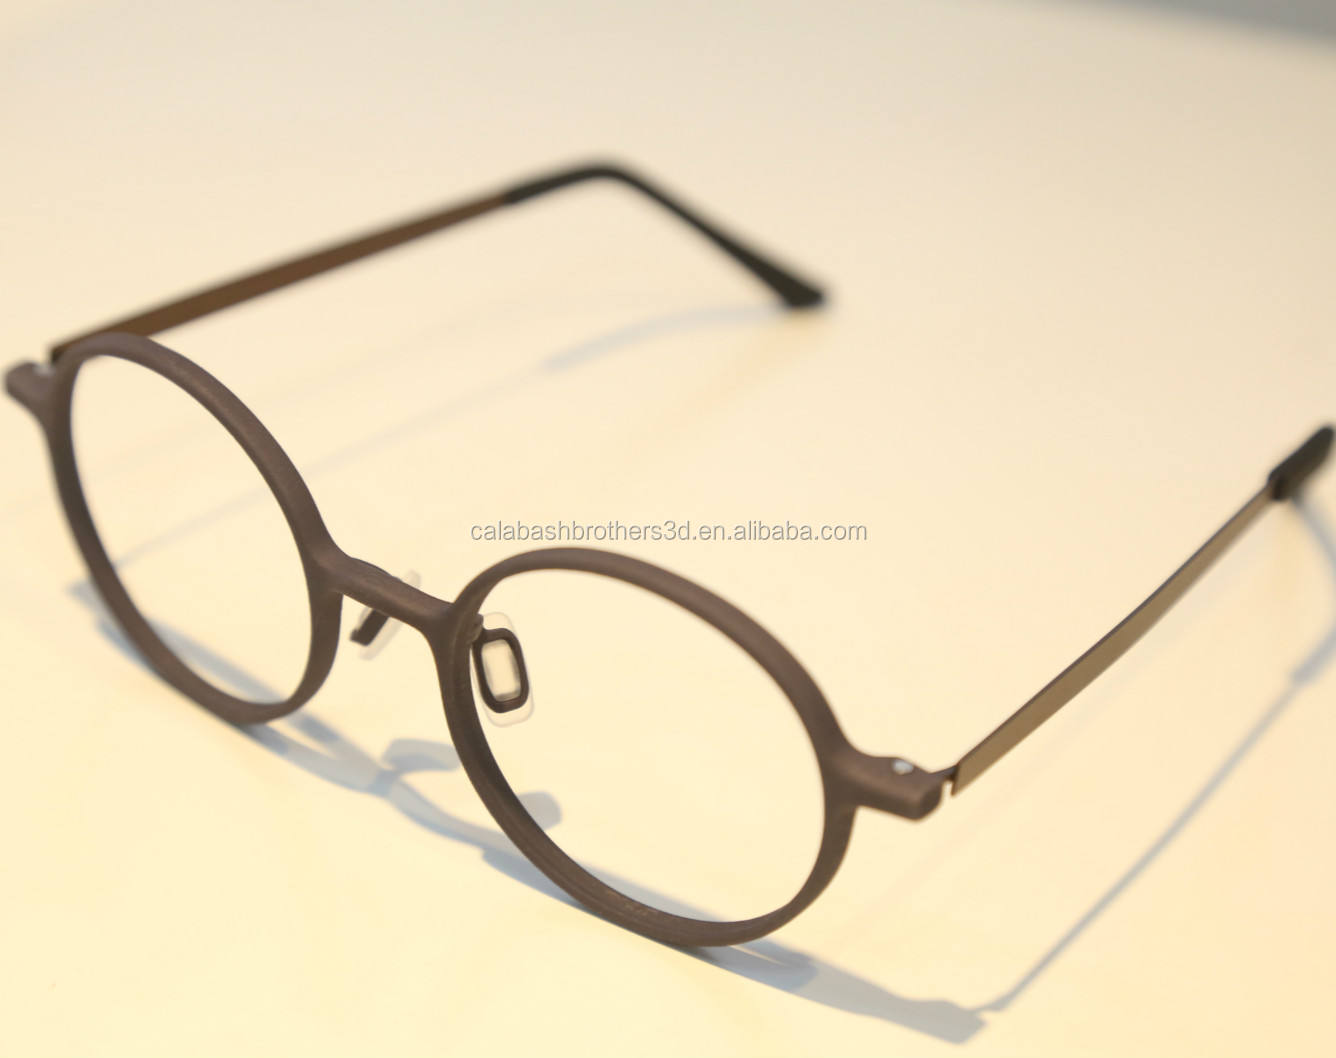 Custom Logo Eye Glasses optical Glasses frame PA11 PA12 MJF 3D Printing cross eyewear in China